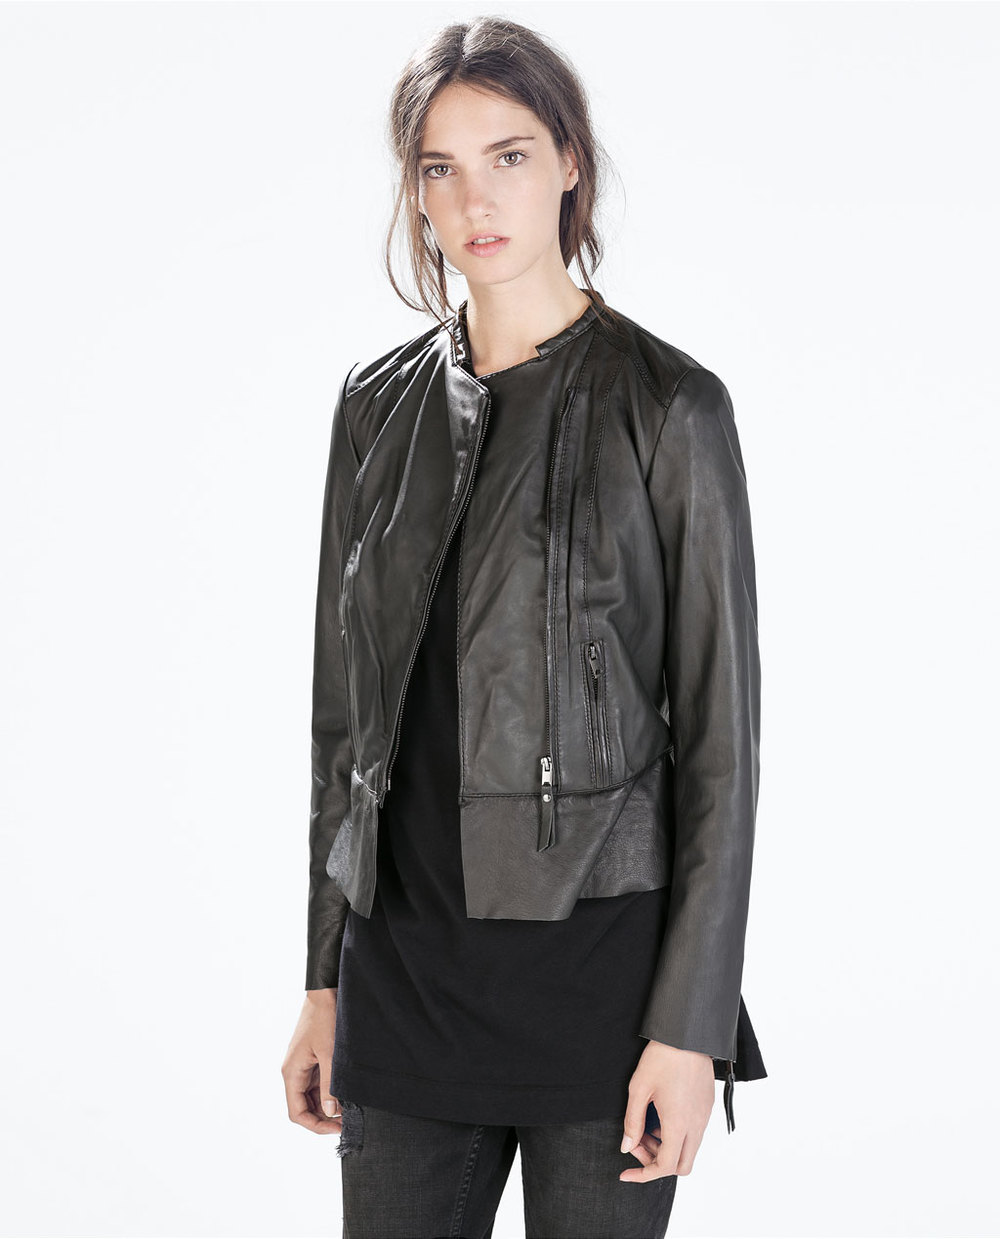 Zara  Short Leather Jacket  ($199)